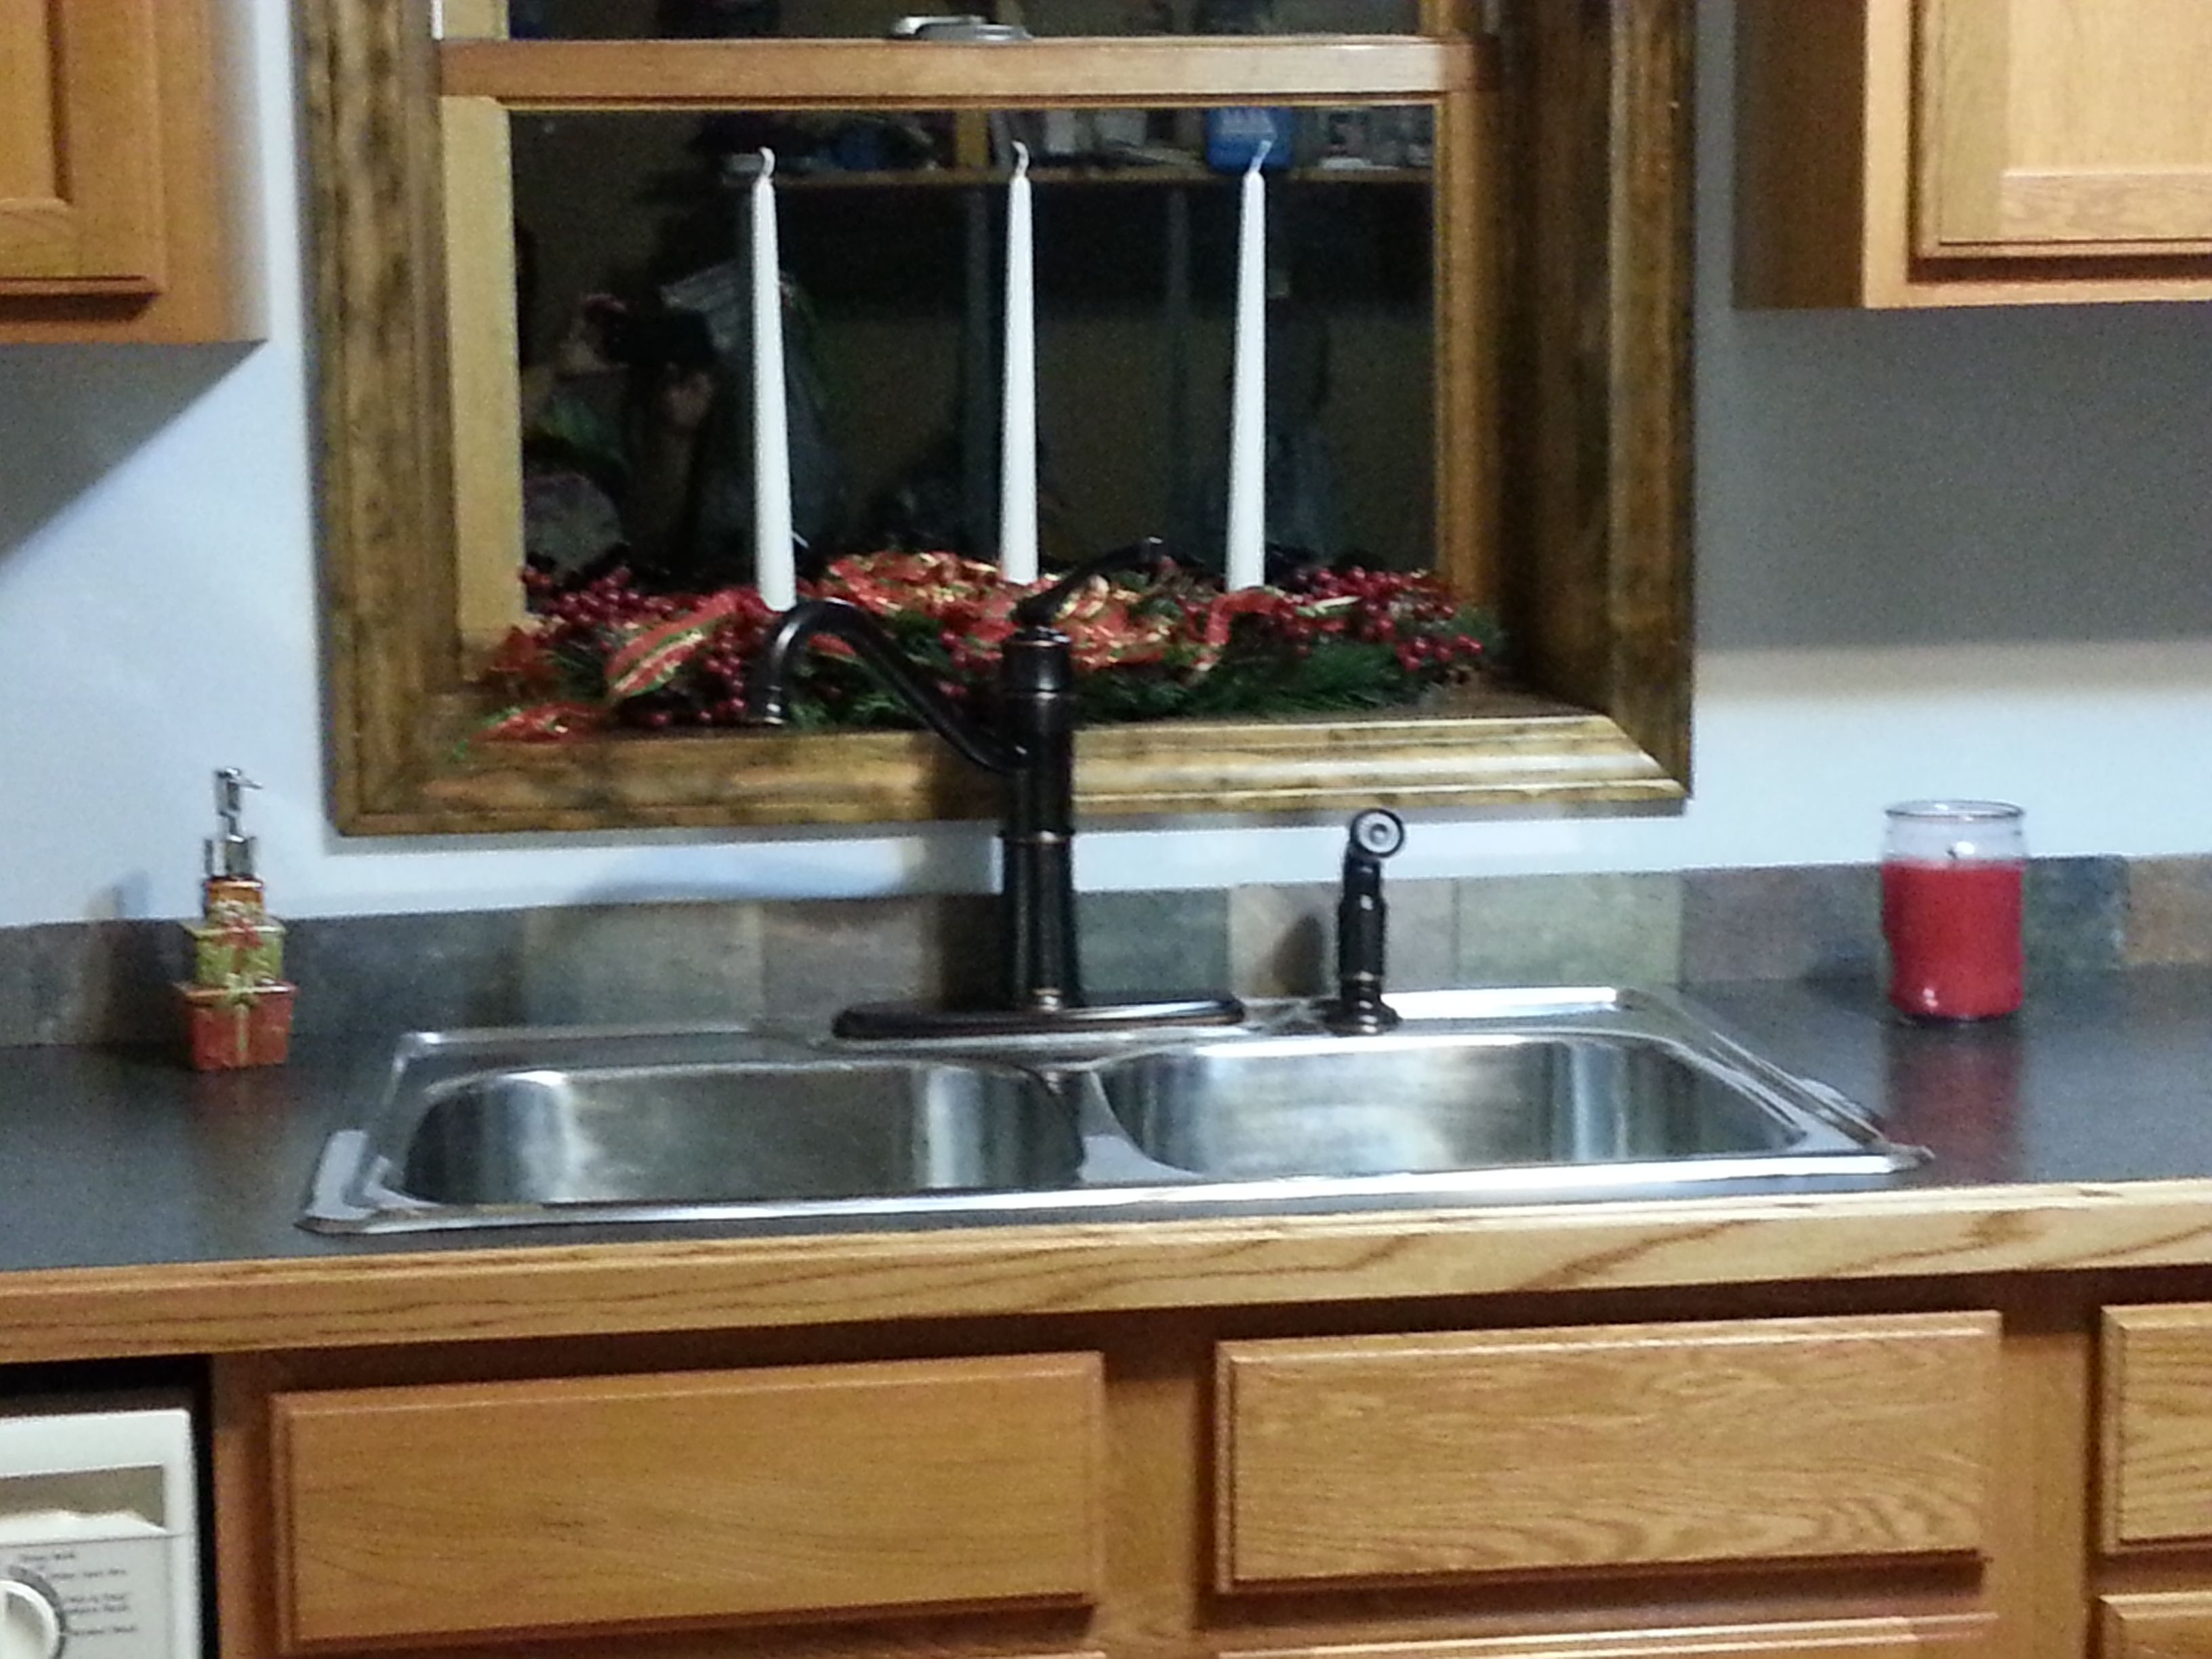 My Kitchen Sink And Countermolen Faucet Slate Tyle Backsplash Glamorous Kitchen Sink Backsplash Decorating Inspiration